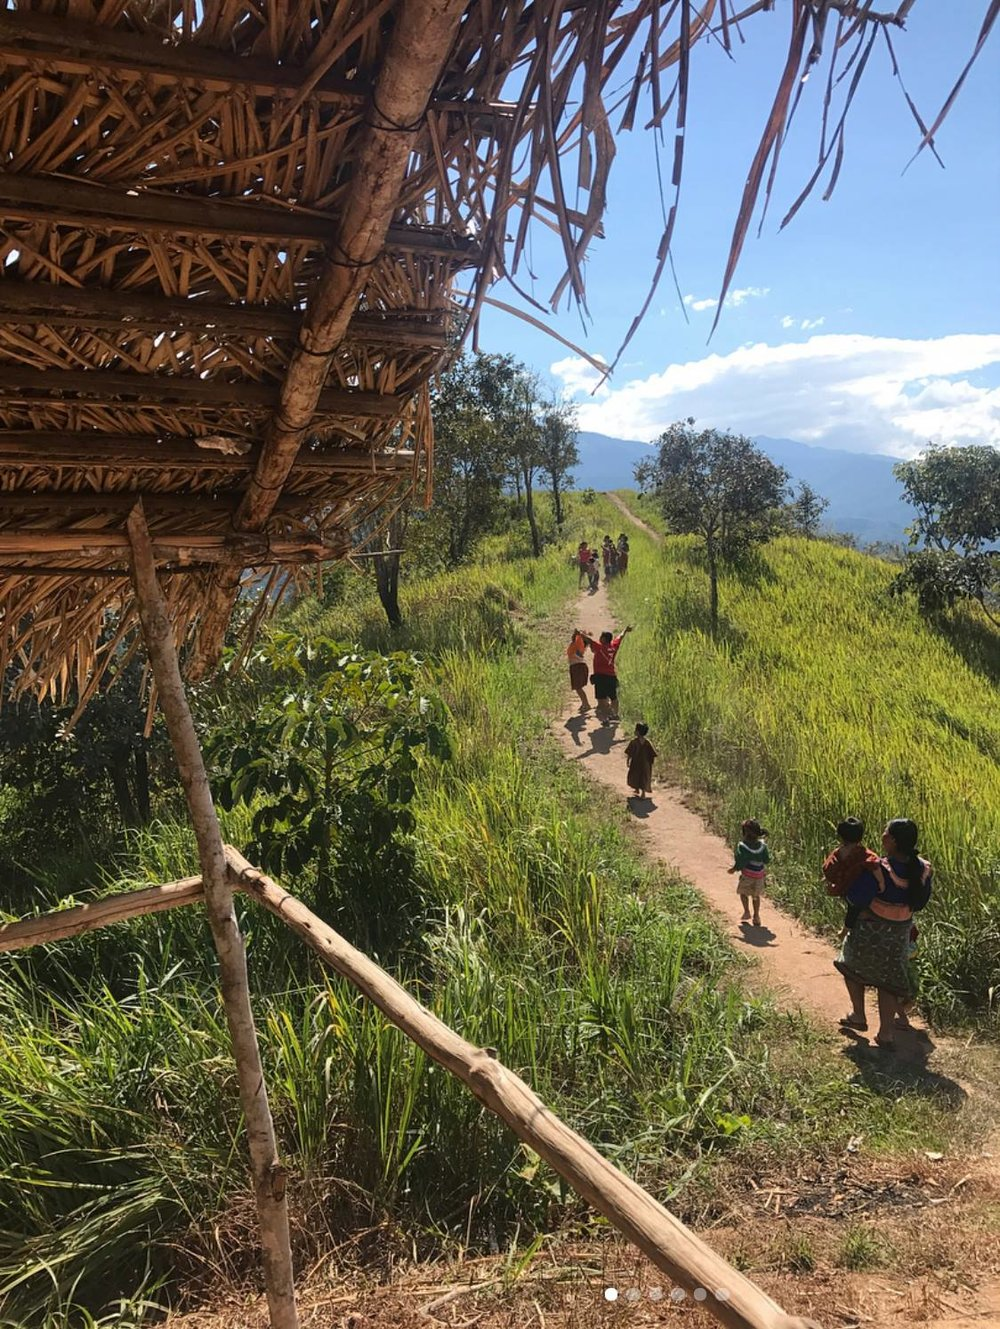 SIHFers went on weekly hikes up mountains to provide health education with youth in Shawan Rama - a local indigenous community in the mountainous region of Chanchamayo, Peru.